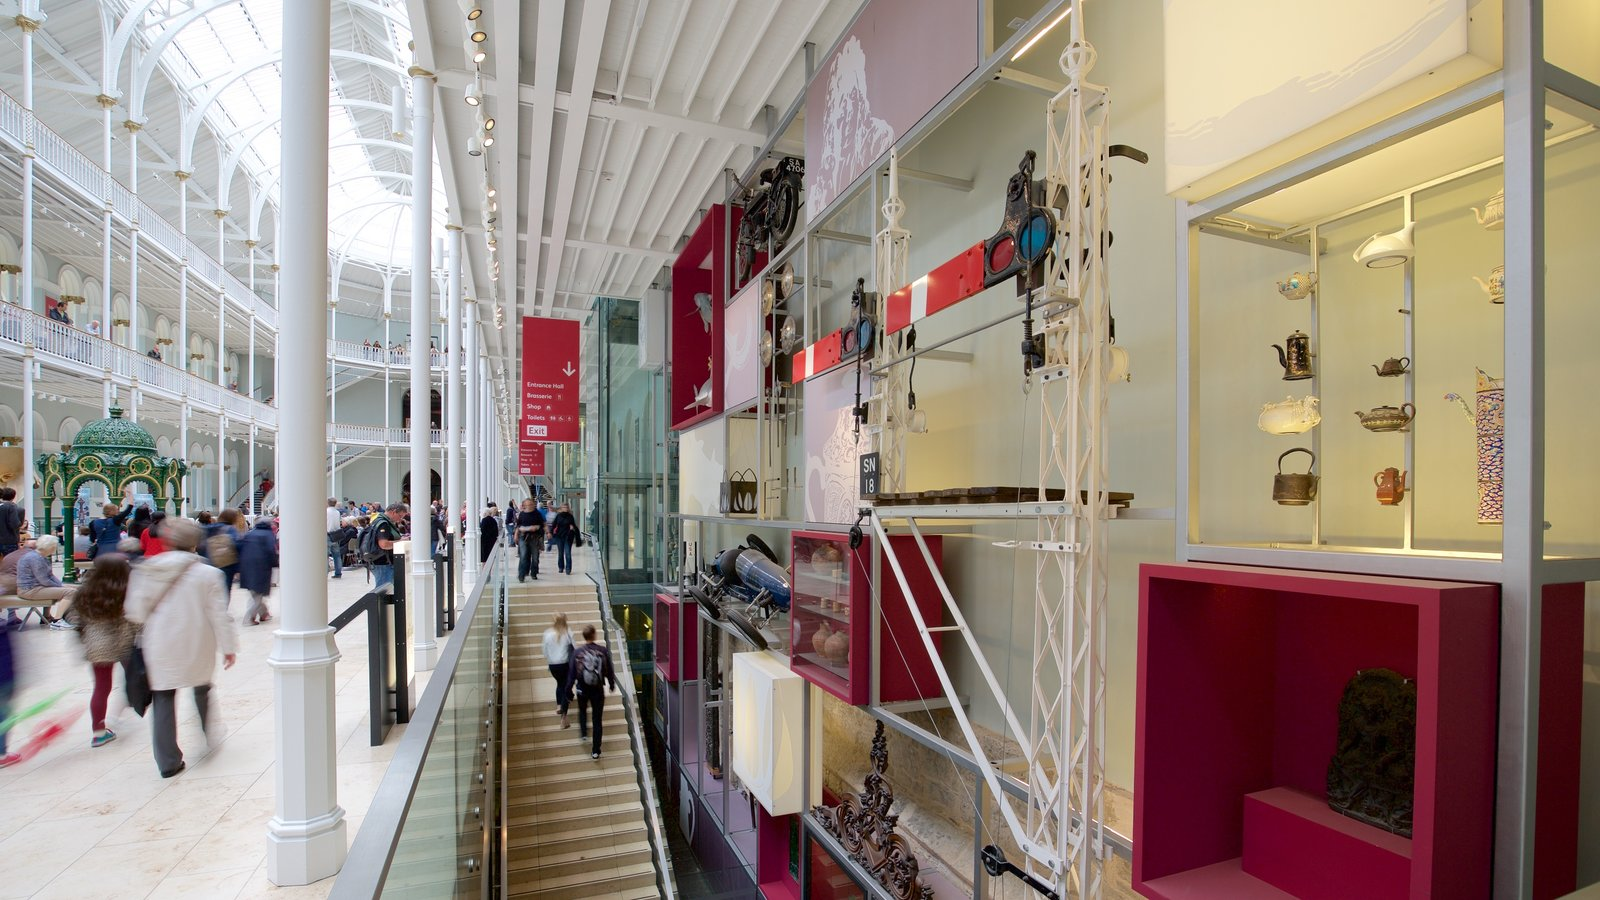 National Museum of Scotland which includes interior views